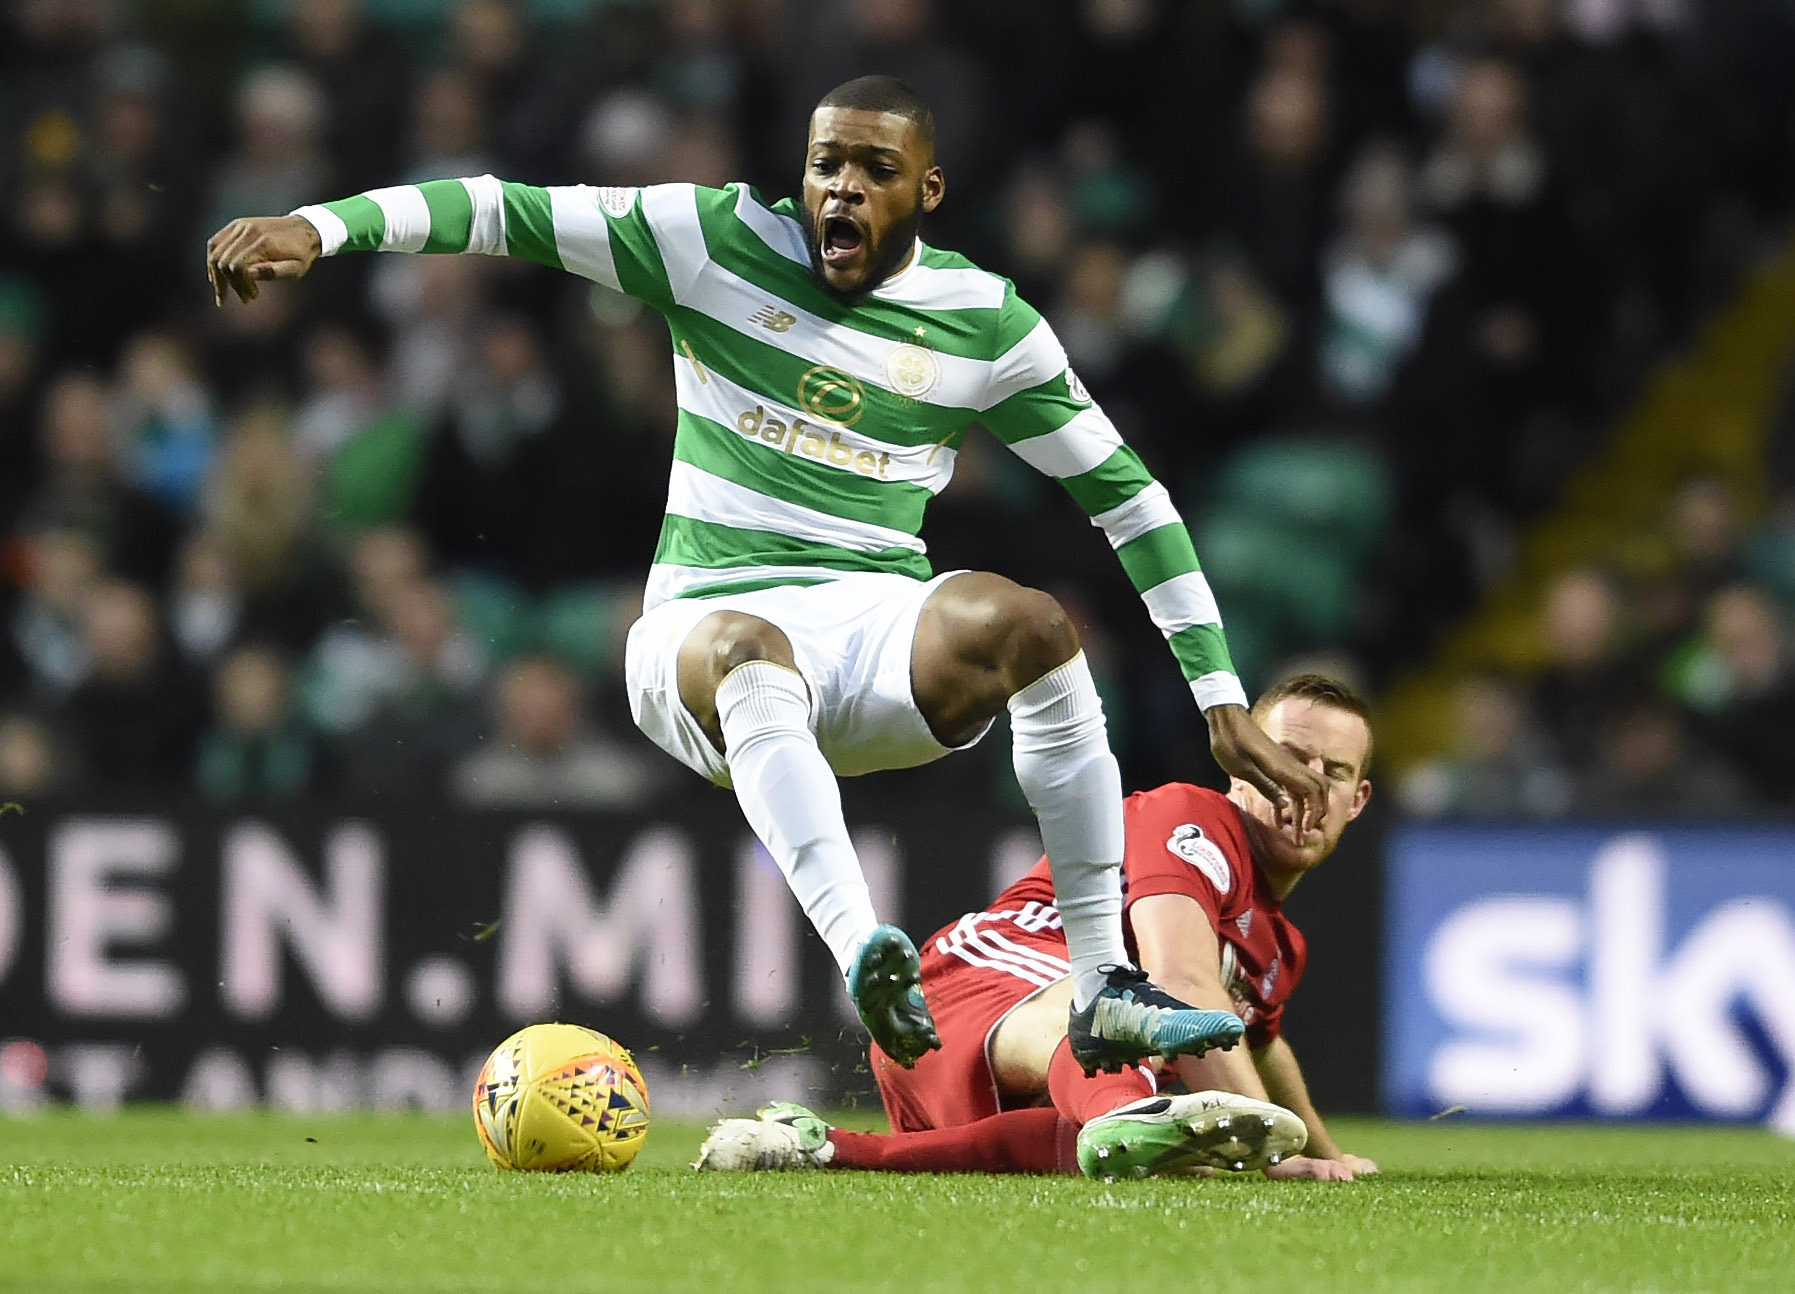 CelticÕs Olivier Ntcham (left) is brought down by AberdeenÕs Adam Rooney during the Scottish Premiership match at Celtic Park, Glasgow. (Ian Rutherford/PA Wire)